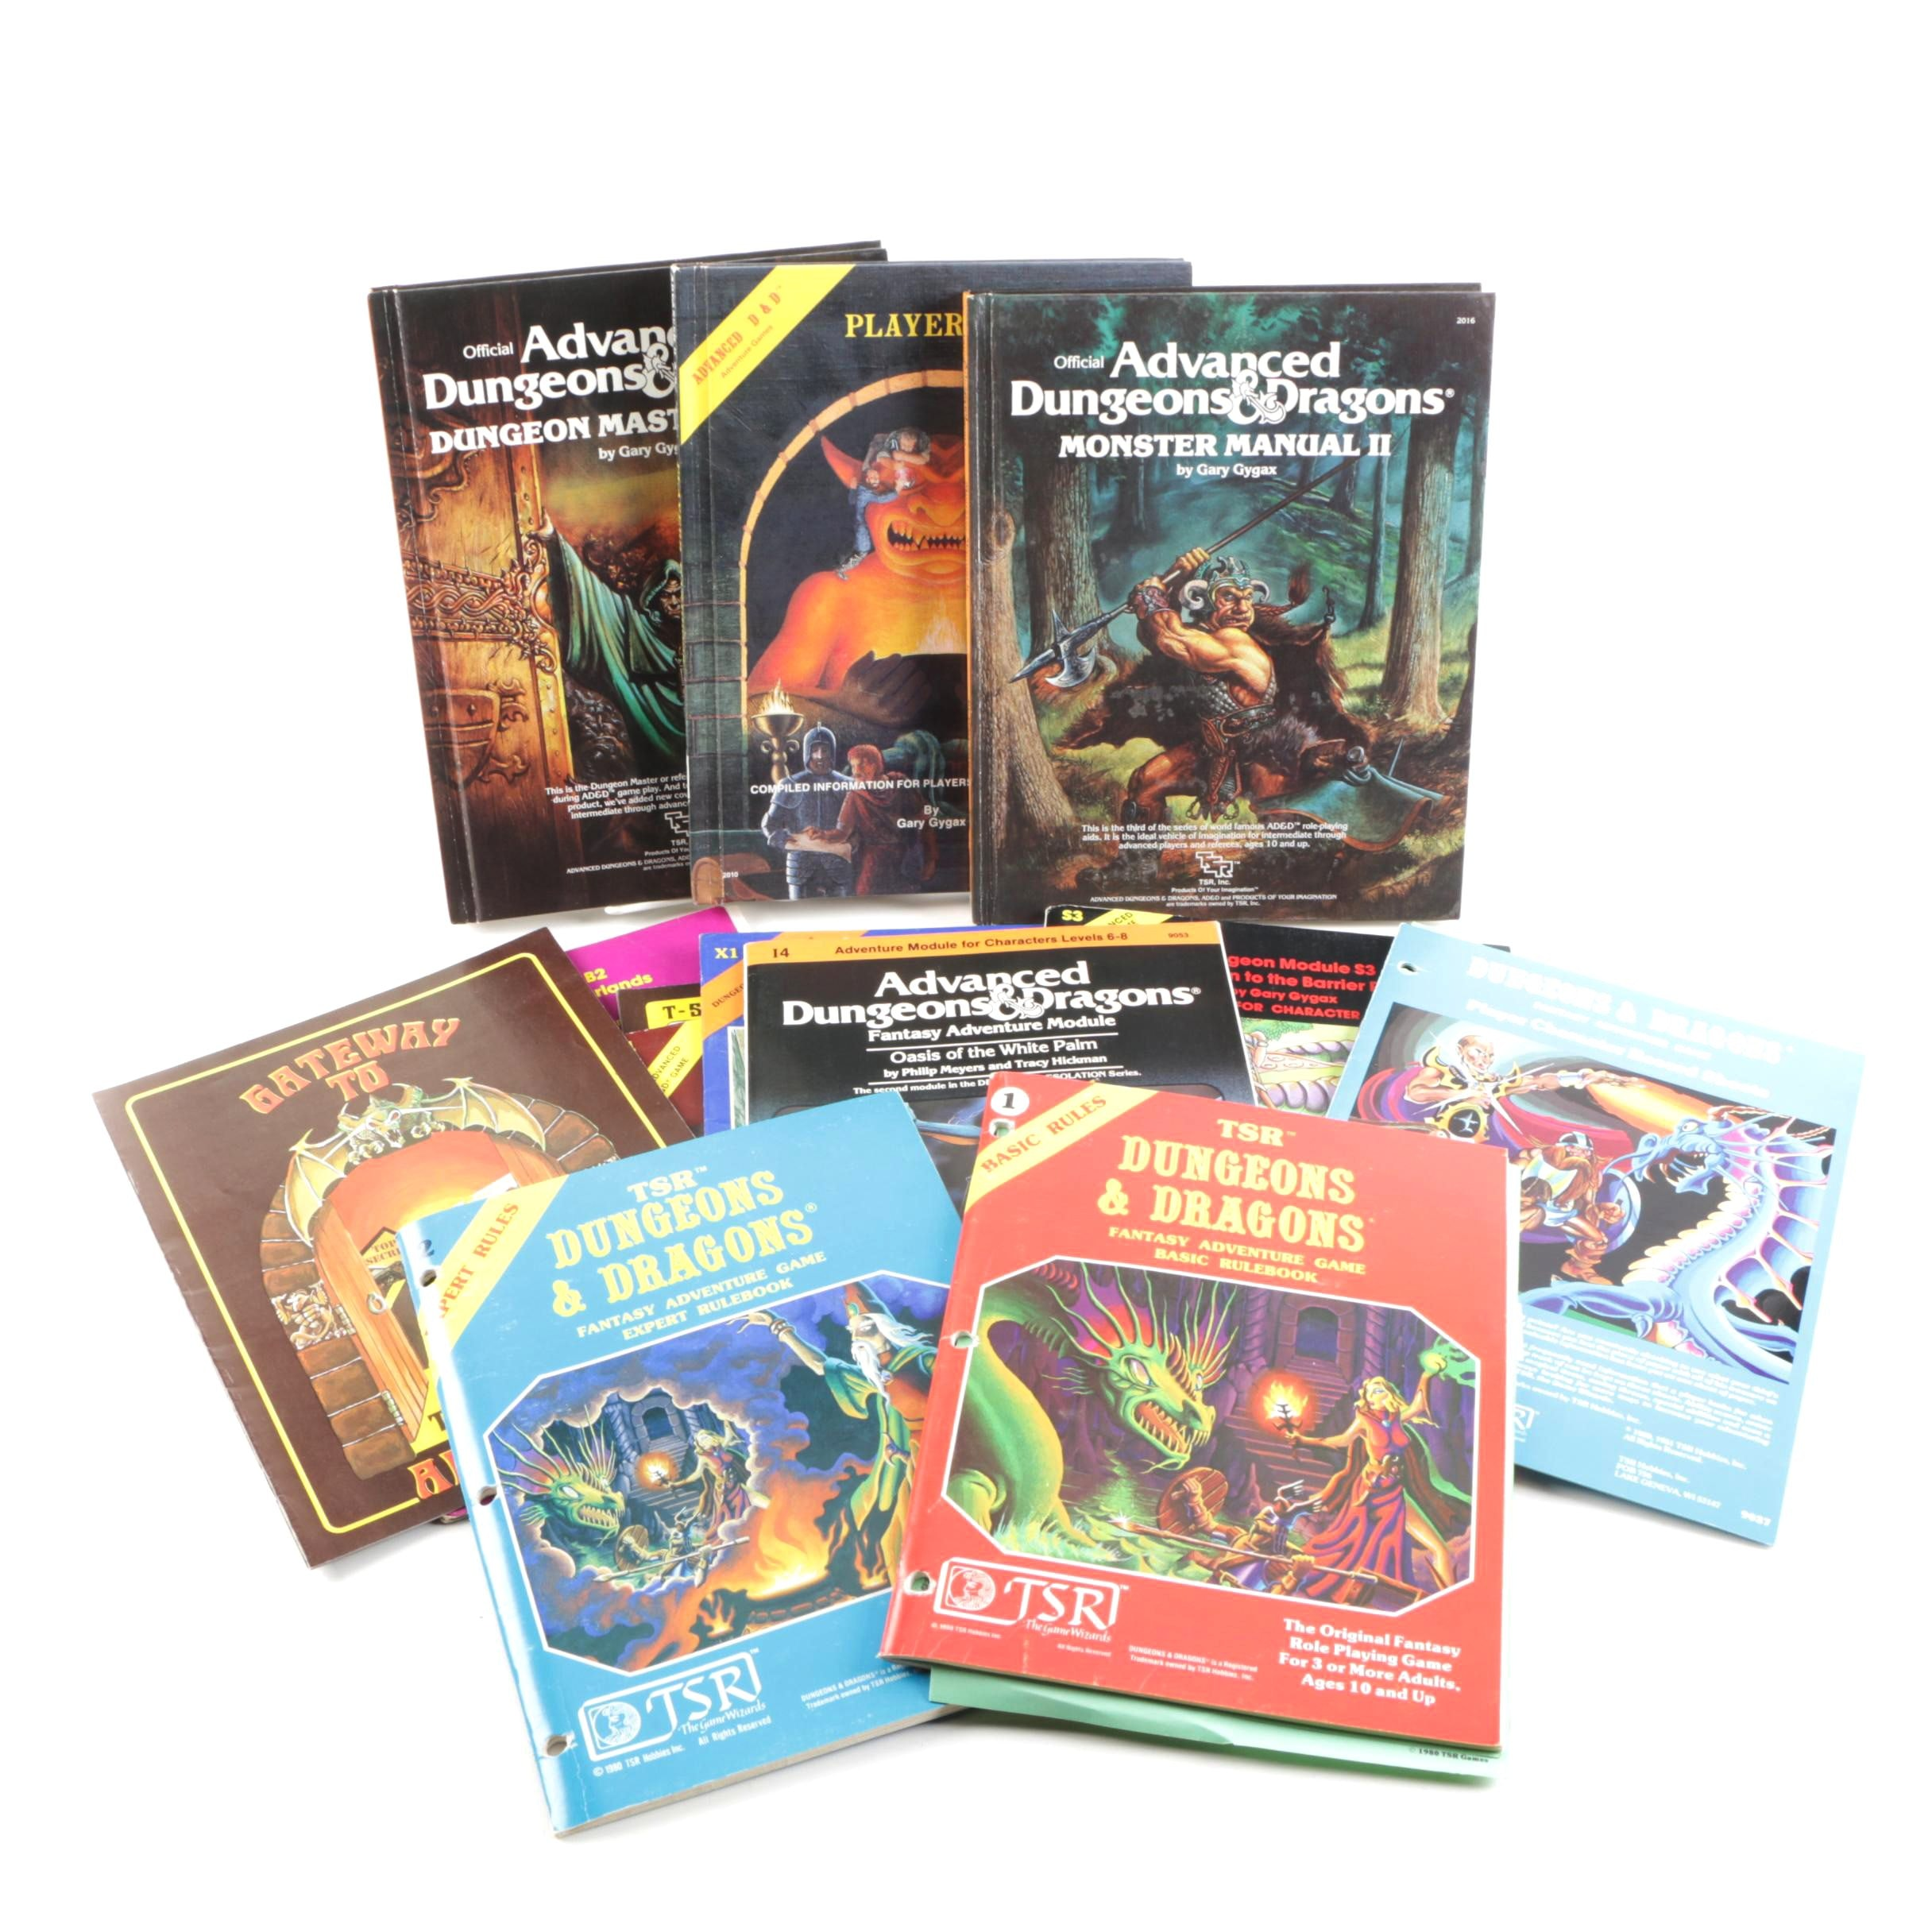 Vintage Dungeons & Dragons Manuals and Rulebooks